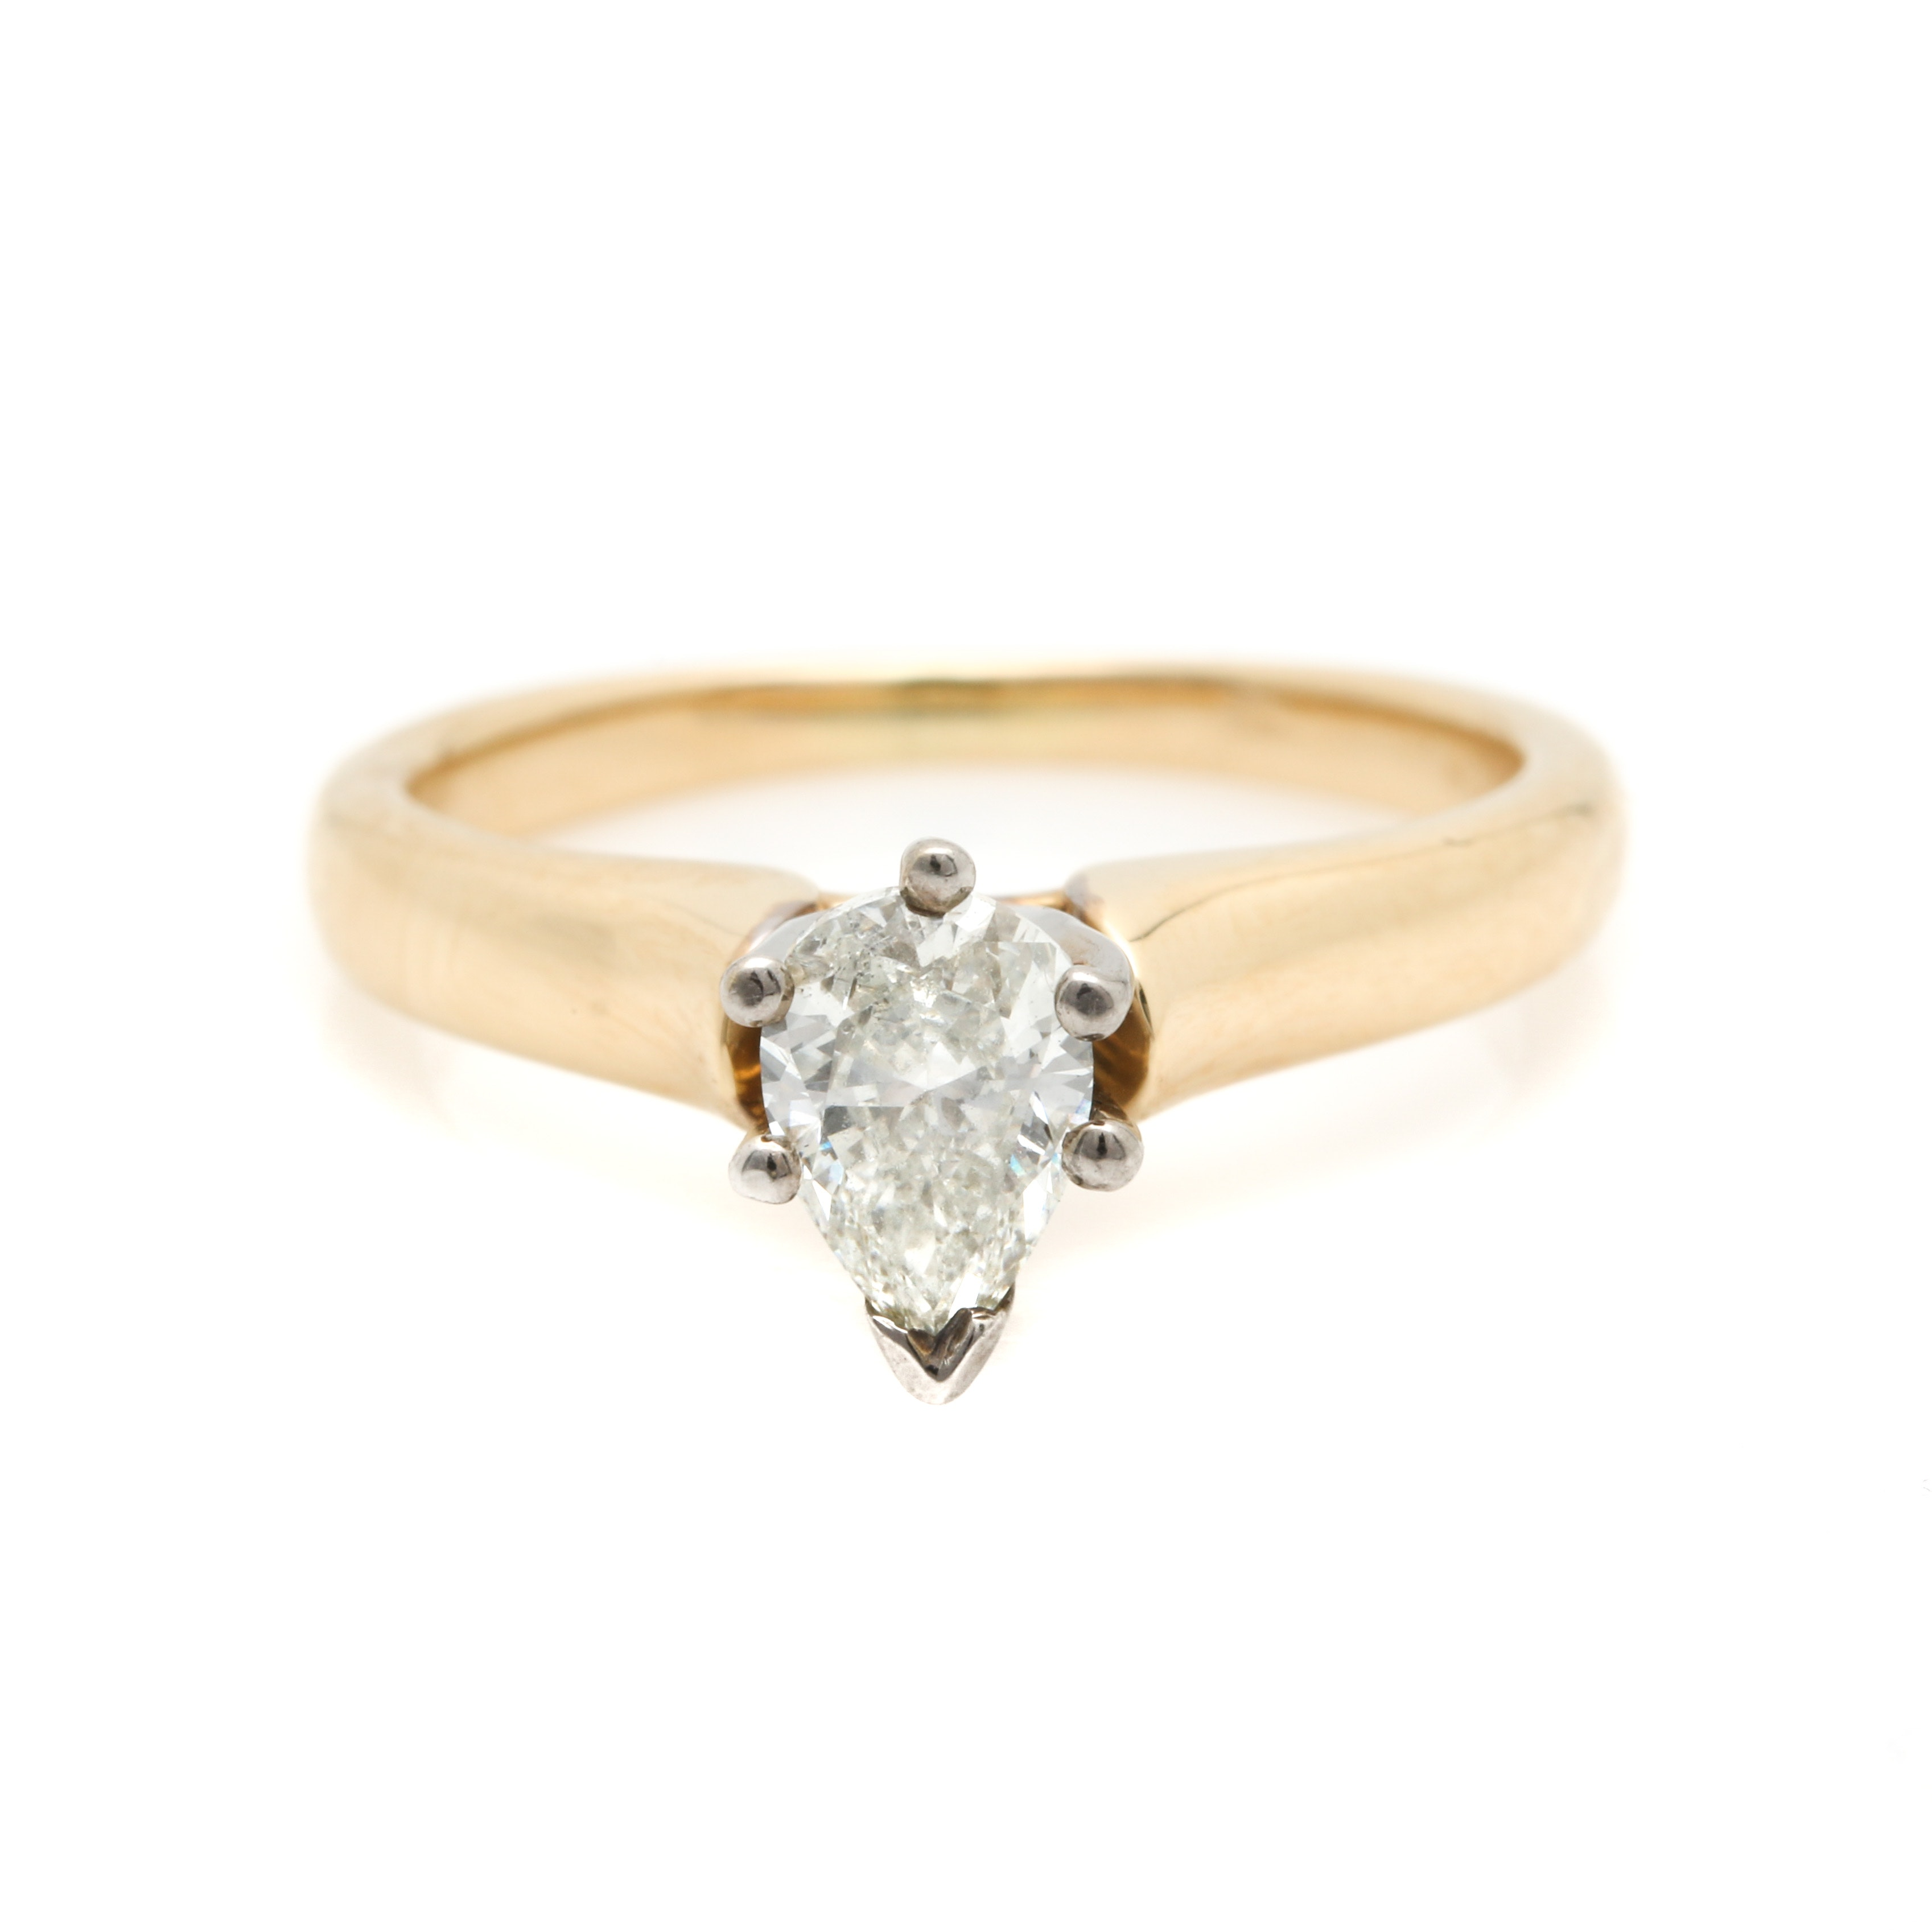 14K White and Yellow Gold Solitaire Diamond Ring